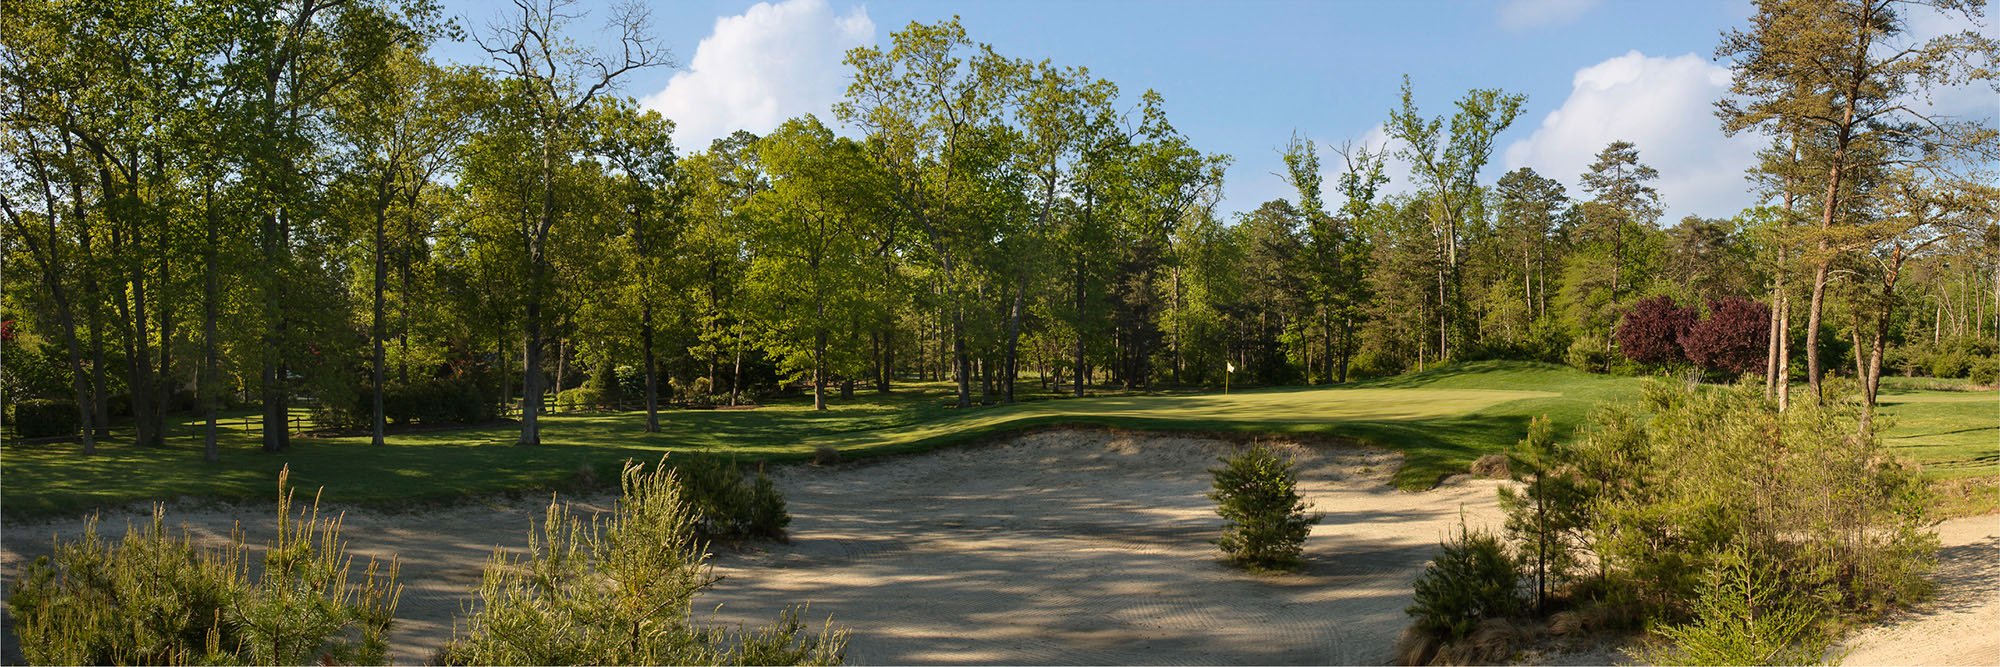 Golf Course Image - Medford Lakes Country Club No. 12